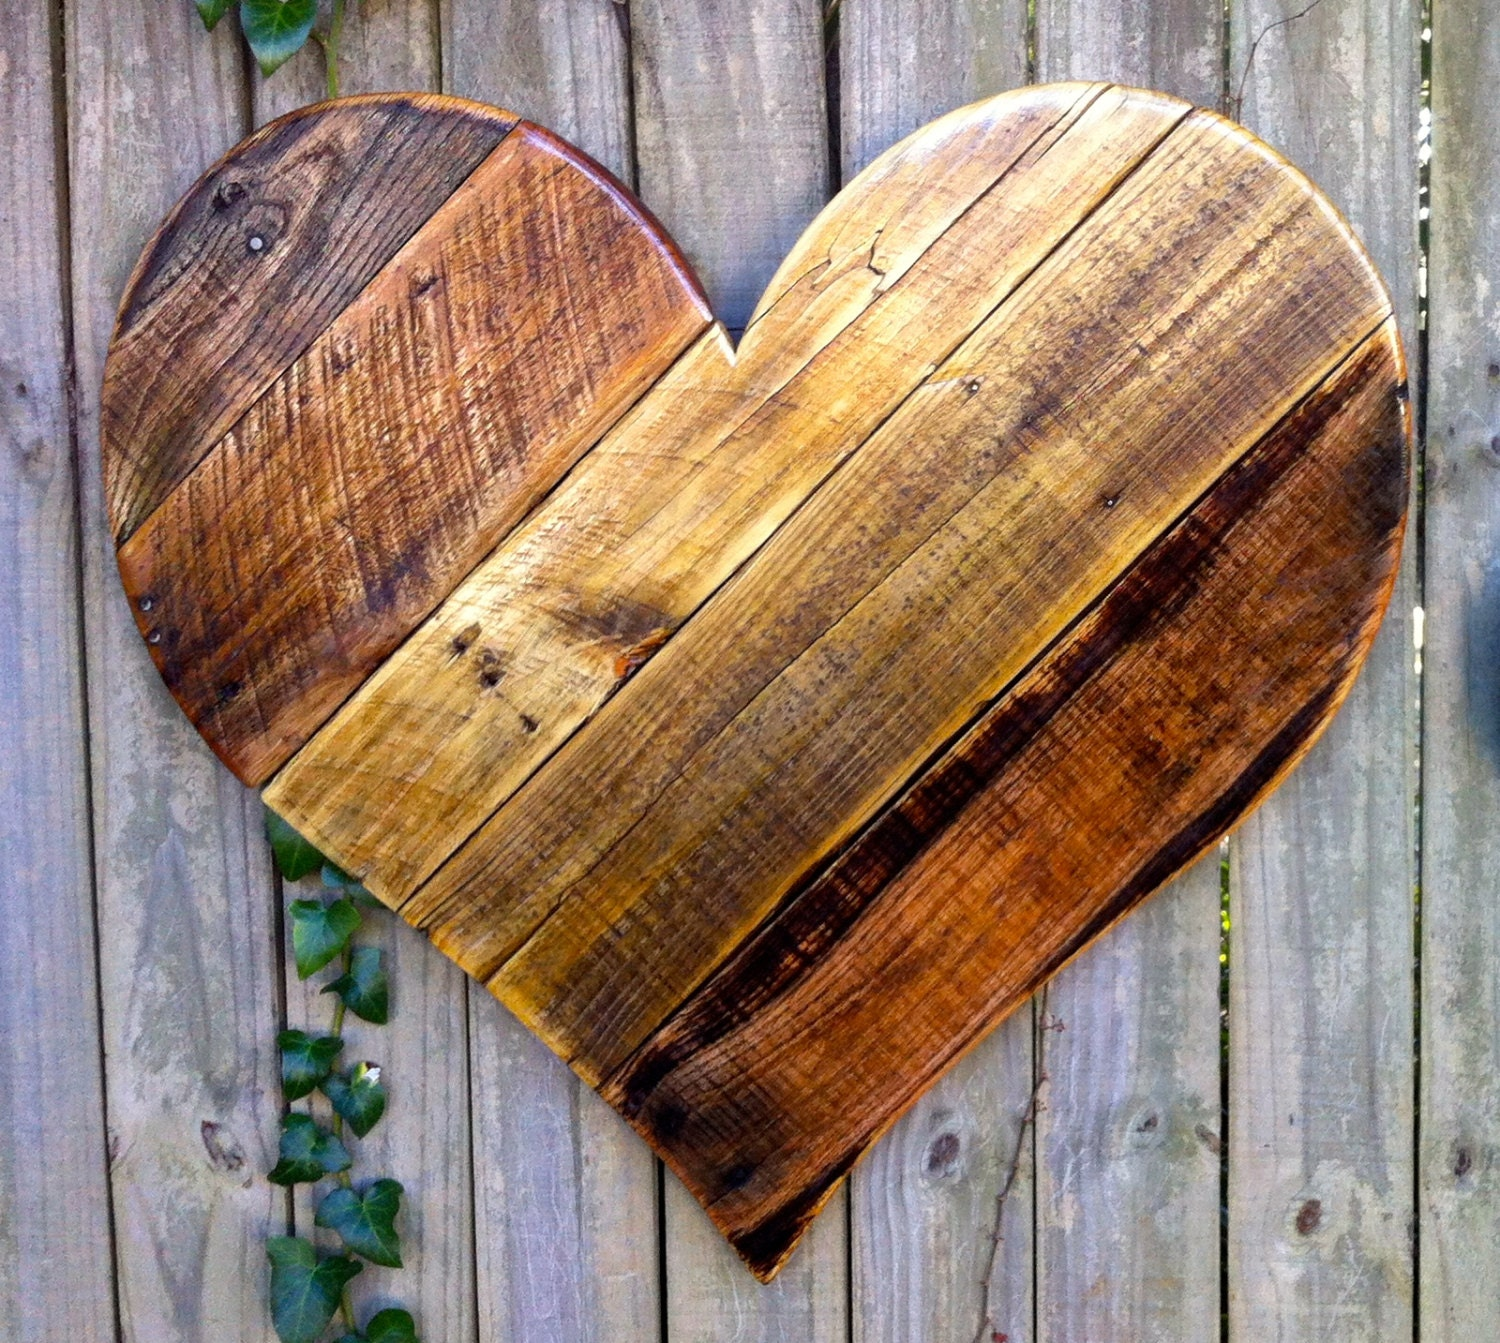 Large Heart Wall Decor : Rustic reclaimed large wood heart wall hanging by almaboheme